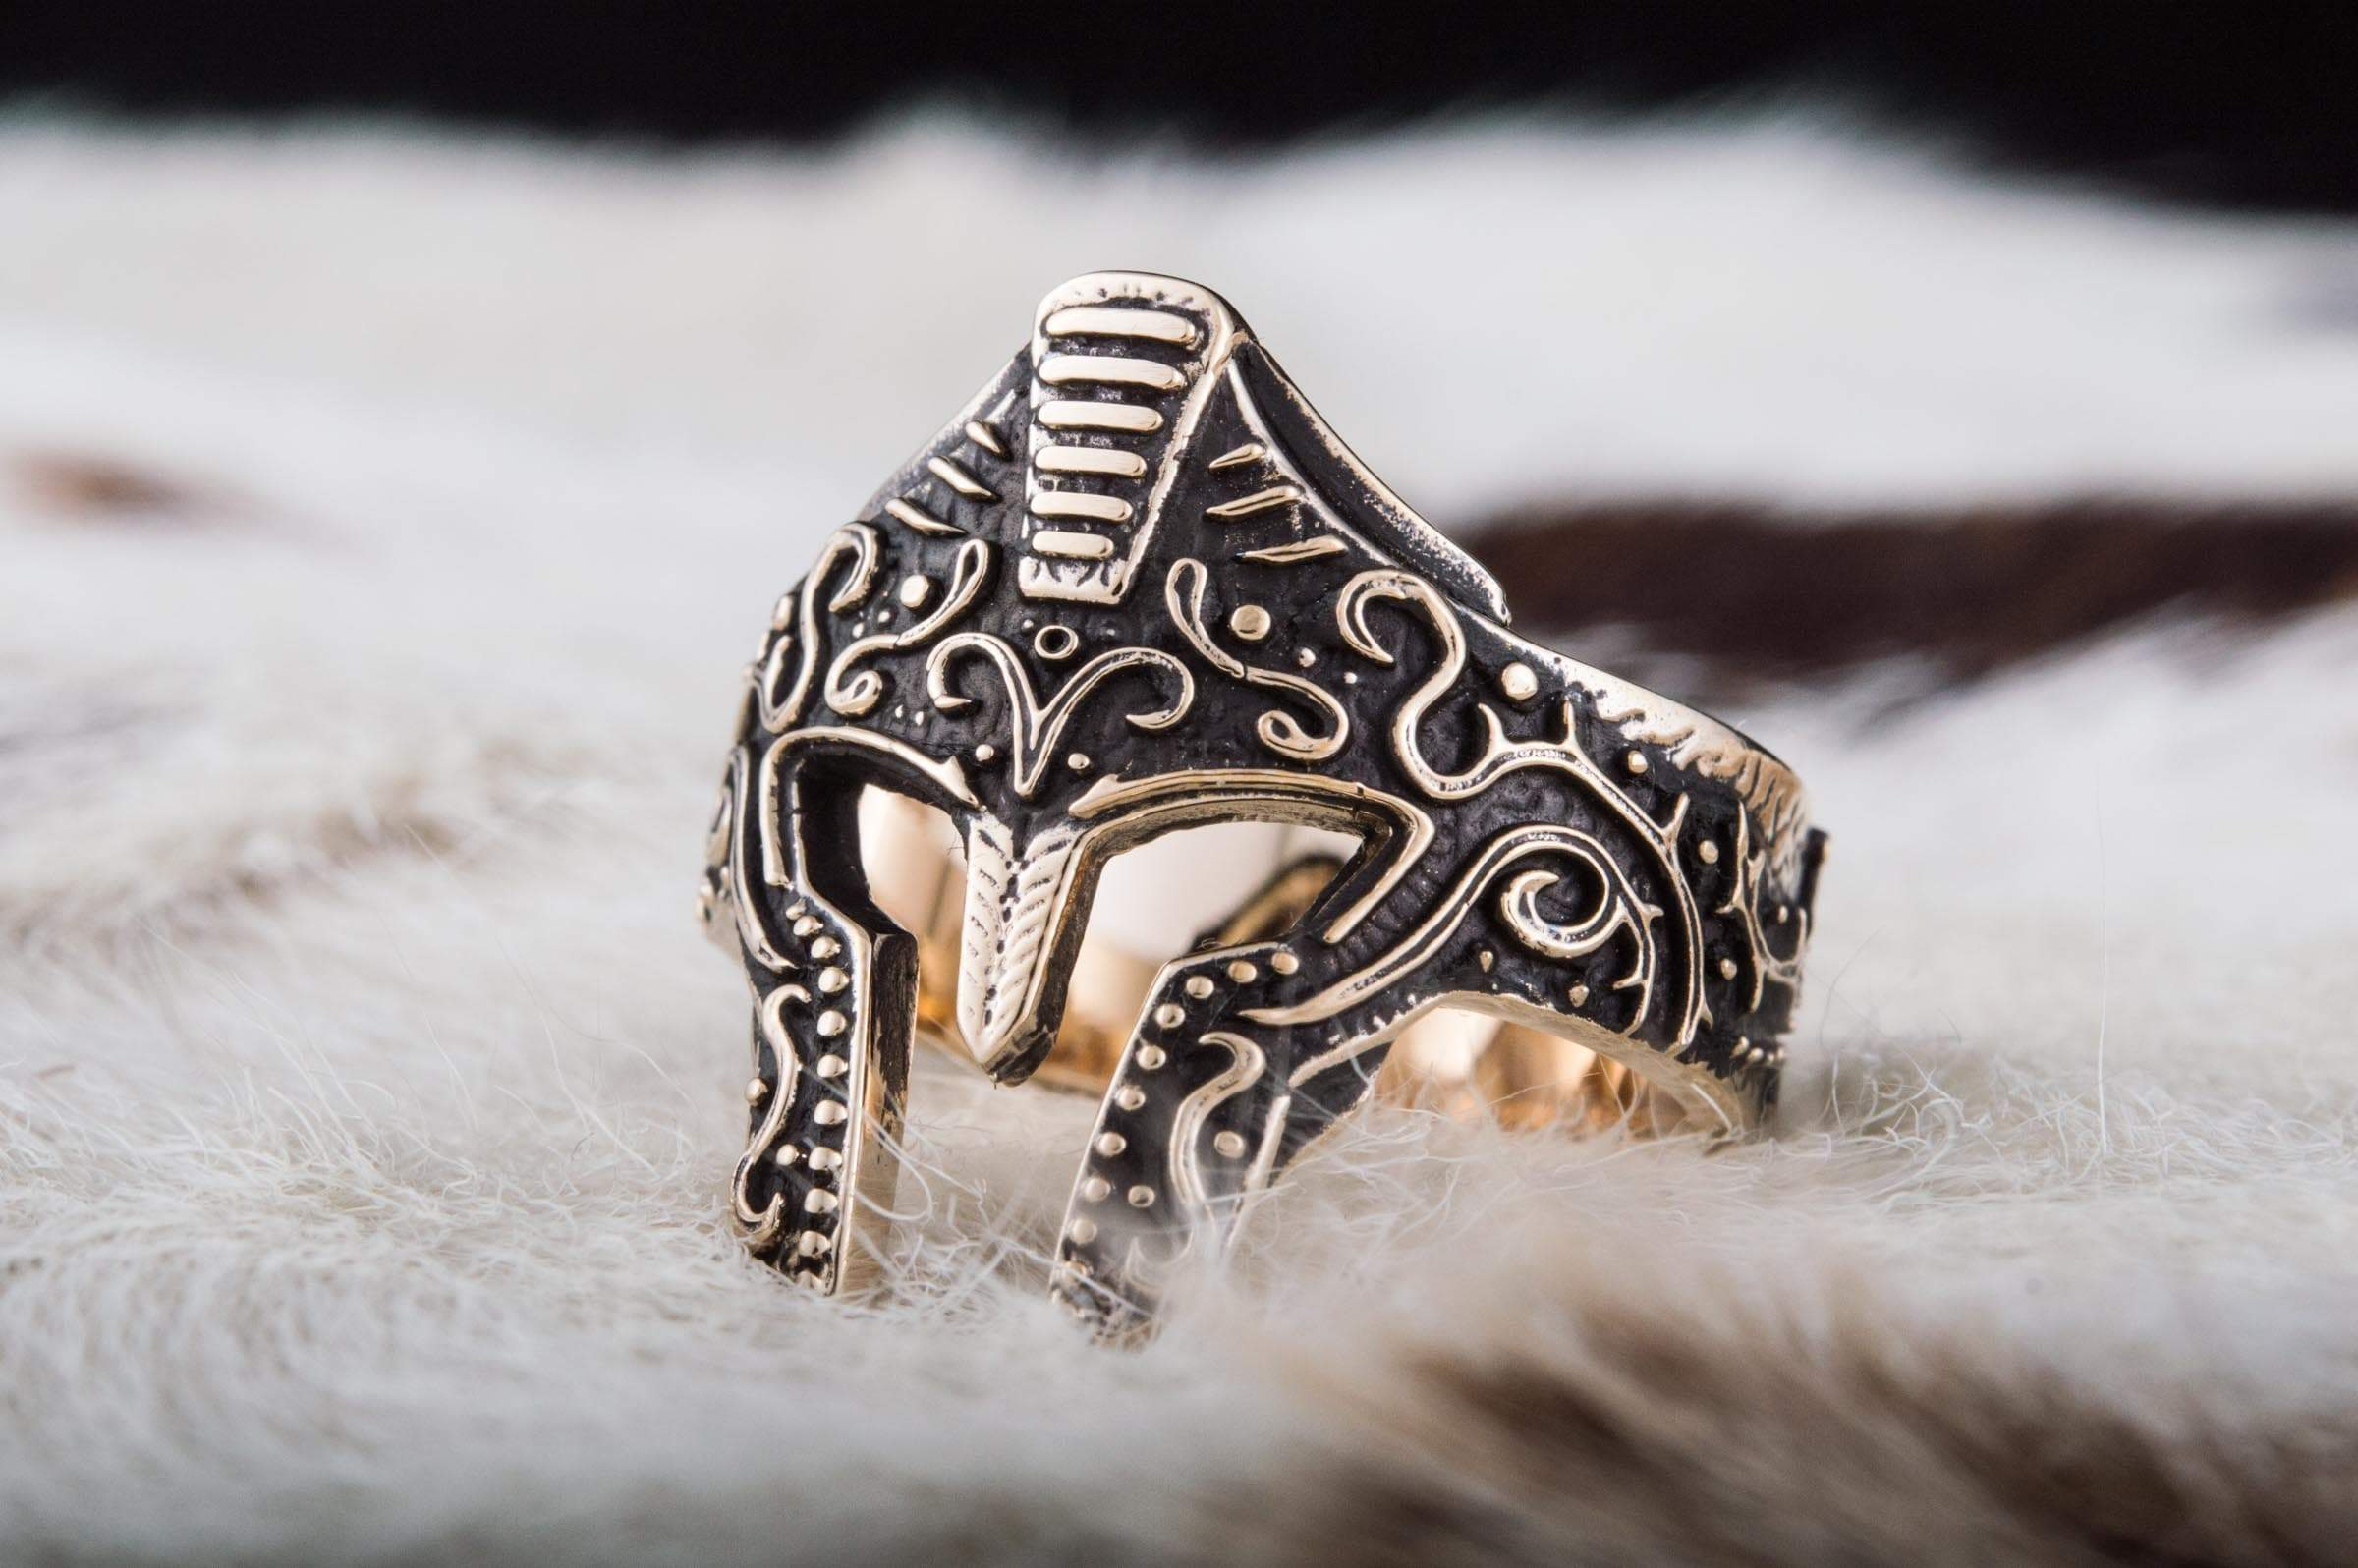 Spartan Jewelry Spartan armor Medival Helmet Spartan Ring Spartan Helmet Silver Spartan Ring Spartan,How its made Video Disc included